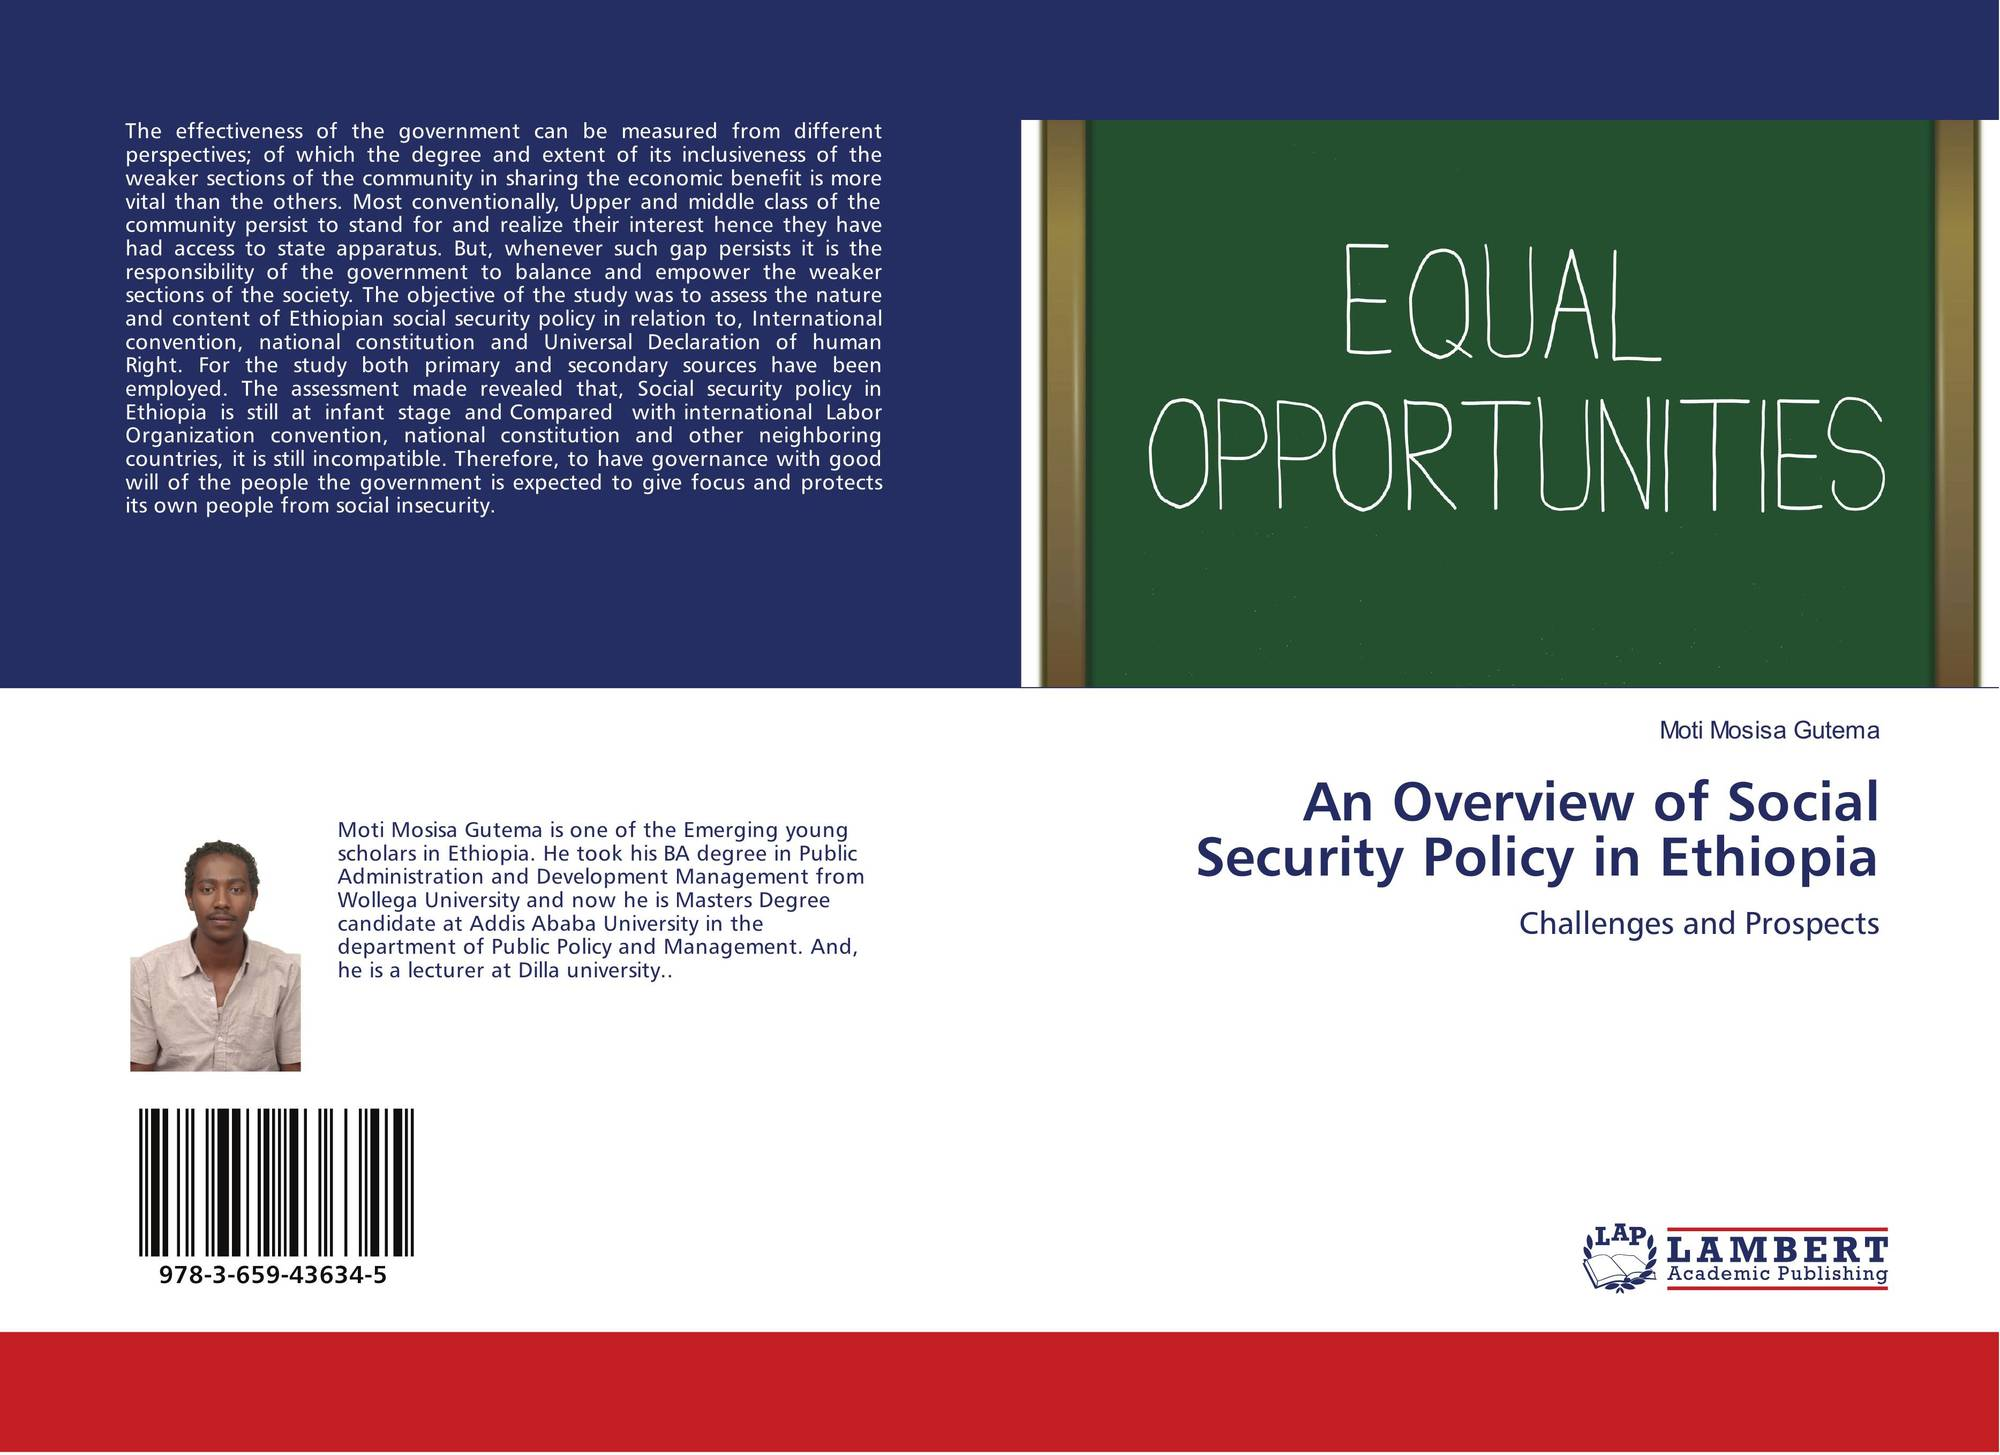 an overview of the social security Social security law: an overview social security is designed, as the title suggests, to provide security to protect individuals from unforeseen catastrophes, the government spreads certain risks among all members of society so that no single family bears the full burden of such occurrences.